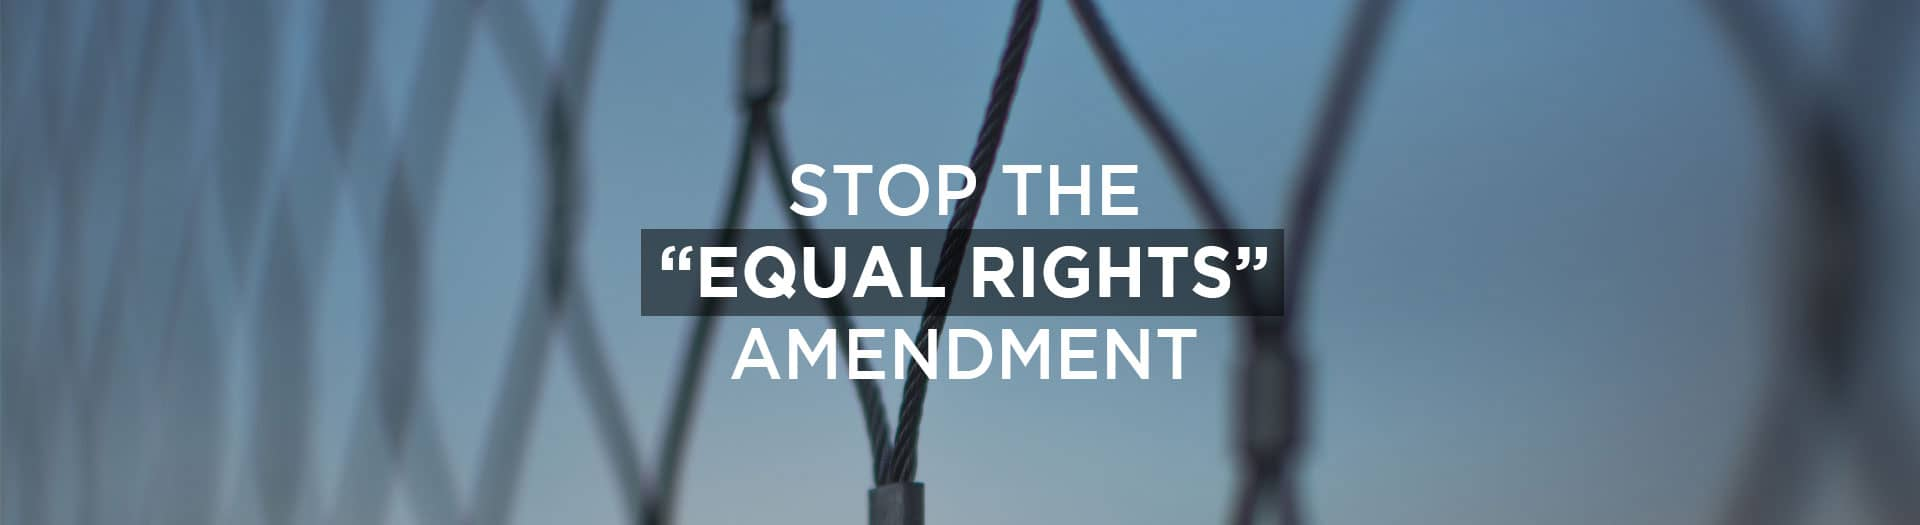 stop the so-called equal rights amendment